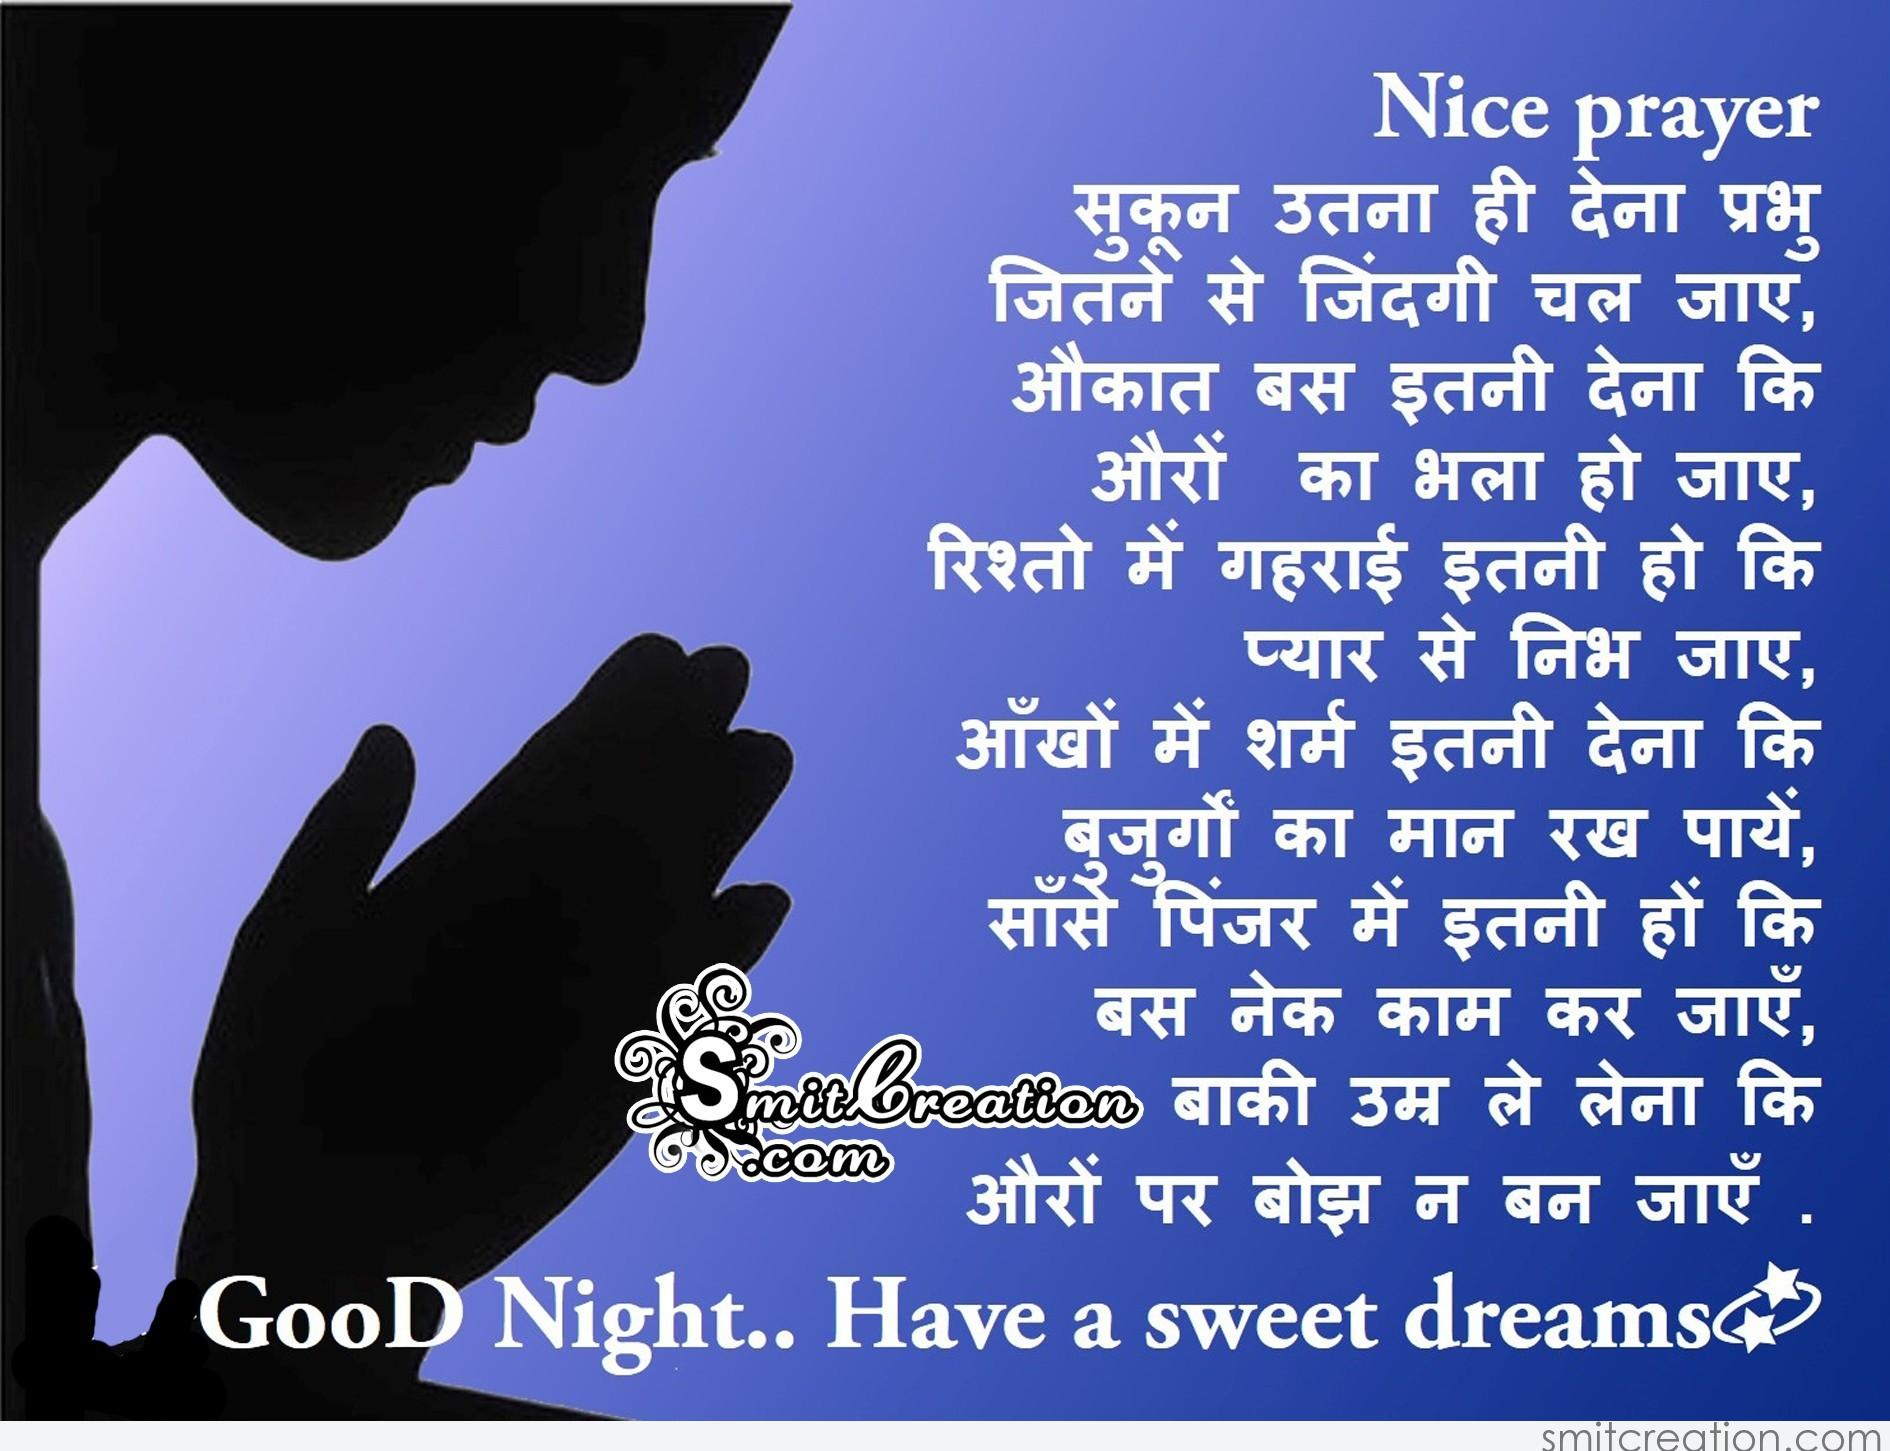 Good Night Blessings Images And Quotes: Shubh Ratri Hindi Quote Pictures And Graphics